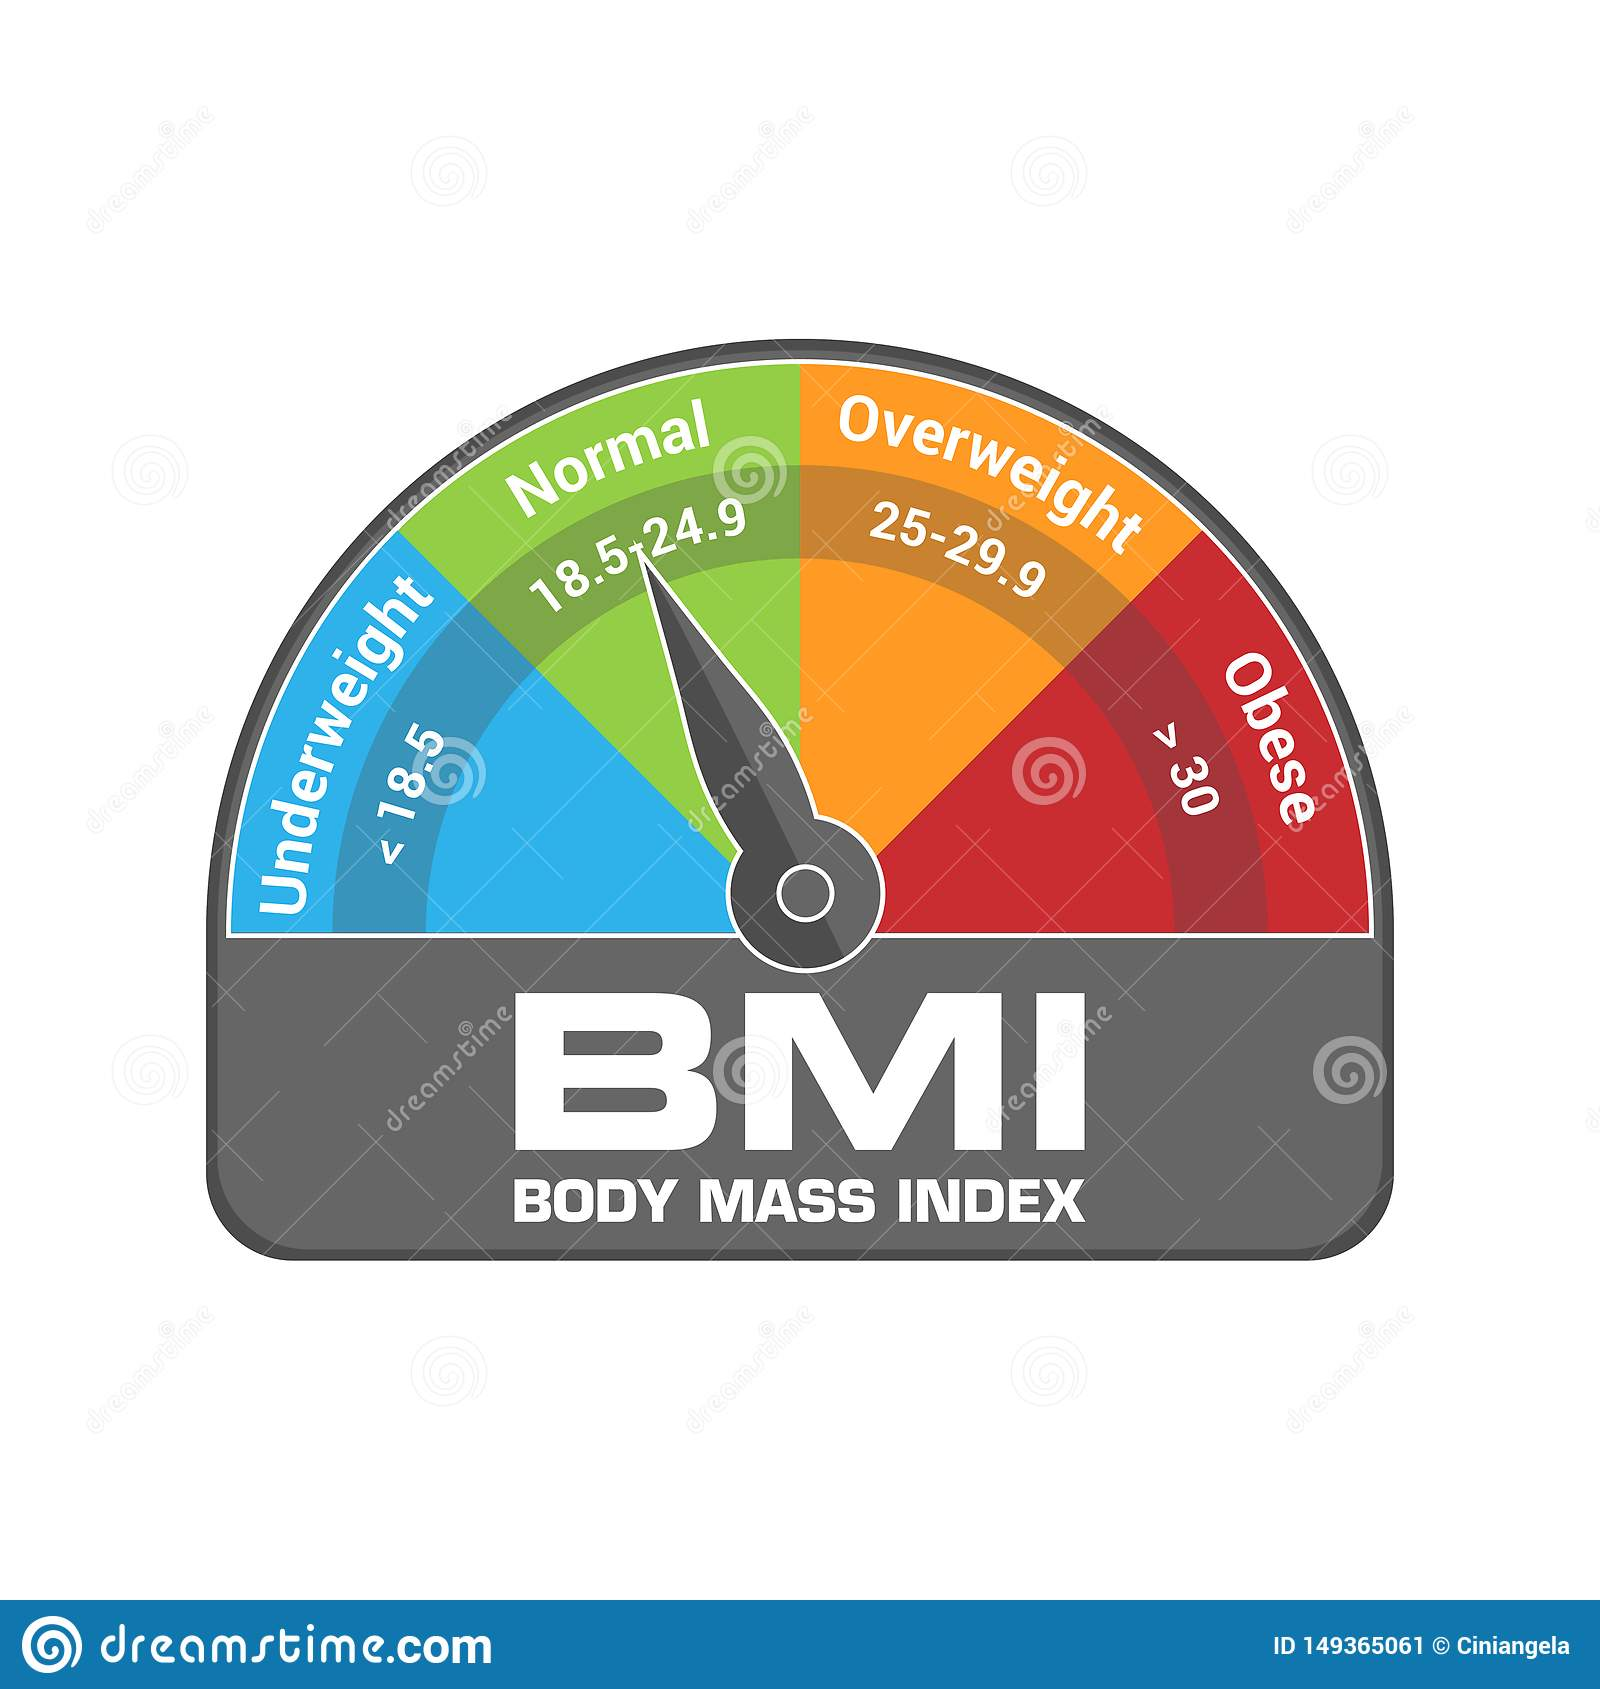 BMI Body Mass Index Calculate Illustration or Infographic Chart. Underweight, Normal, Overweight and Obese